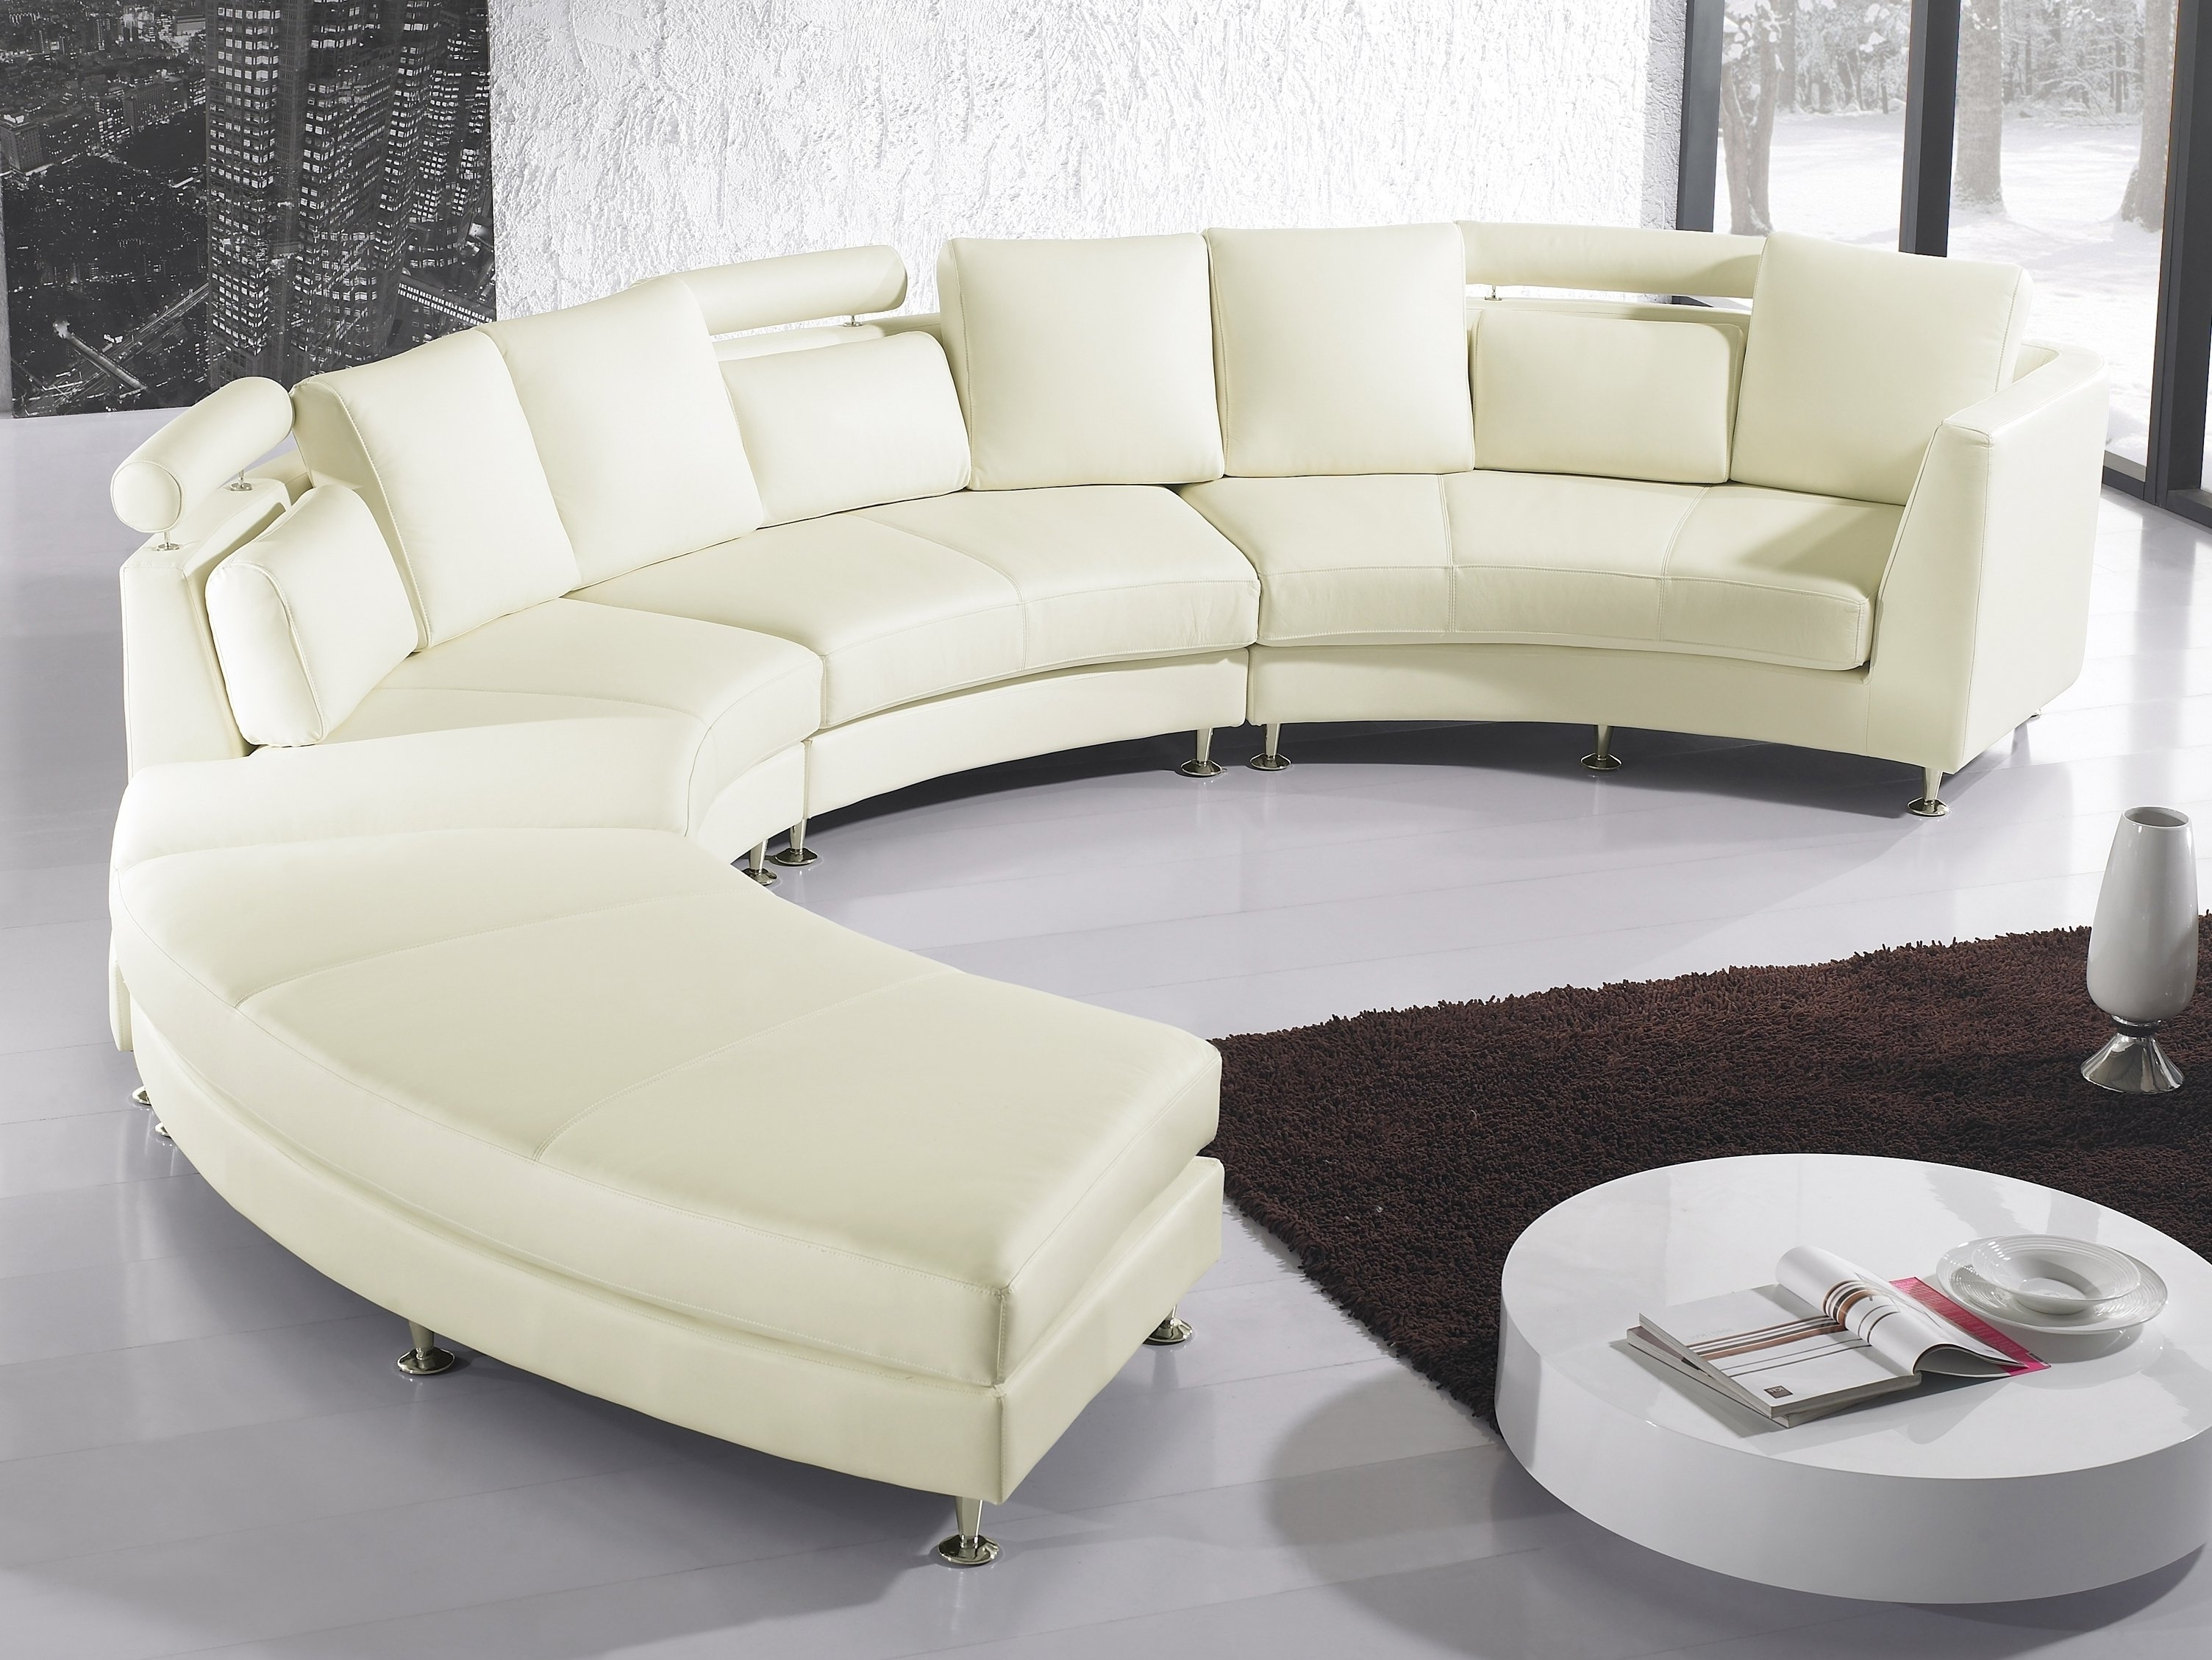 Trendy Hickory Nc Sectional Sofas In Sofas Center Curved Sectional Sofas Hickory Nc Luxury Sofa With (View 12 of 15)